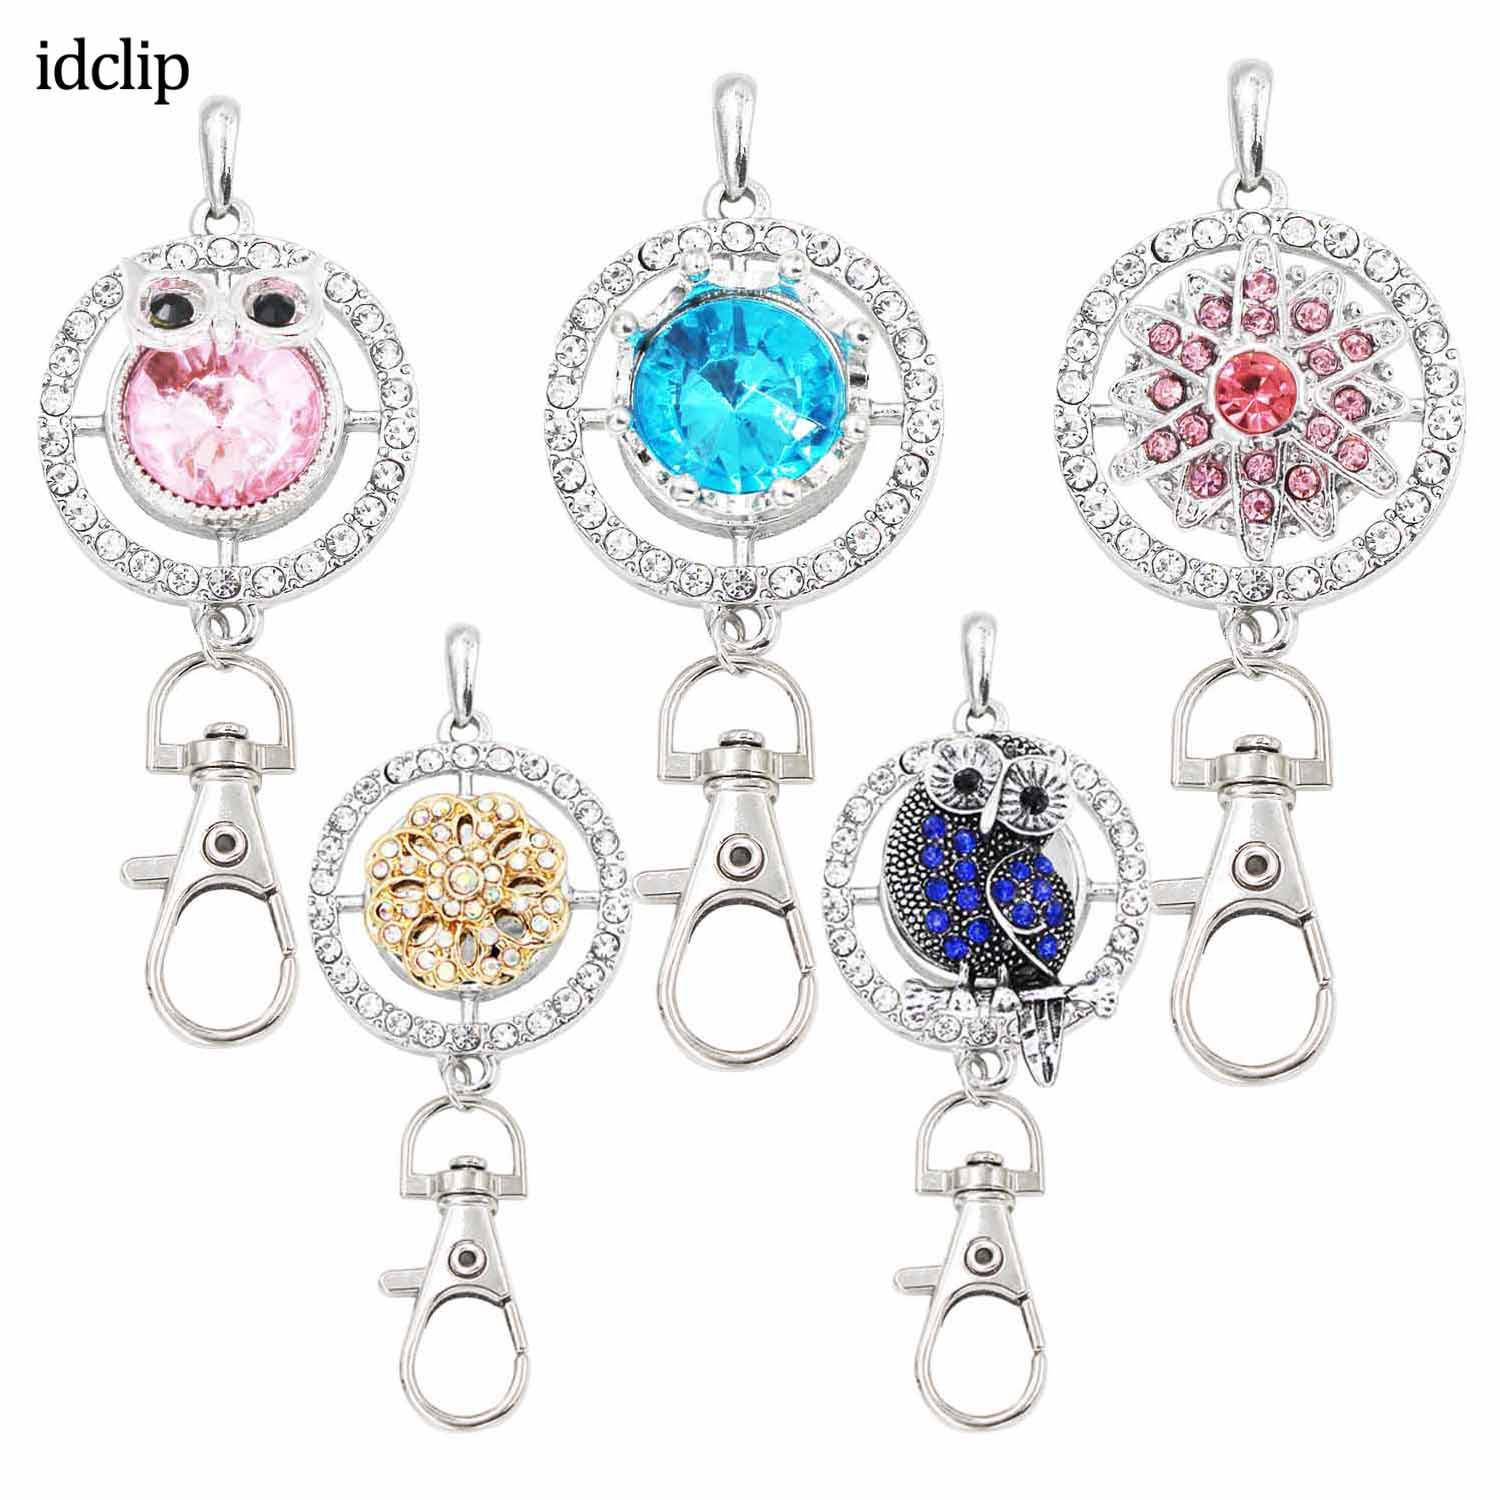 Idclip ID Lanyard Badges Holder Bling Necklace Owl Snap Jewelry Pink Charms Pendant Clip Womens Office Accessories